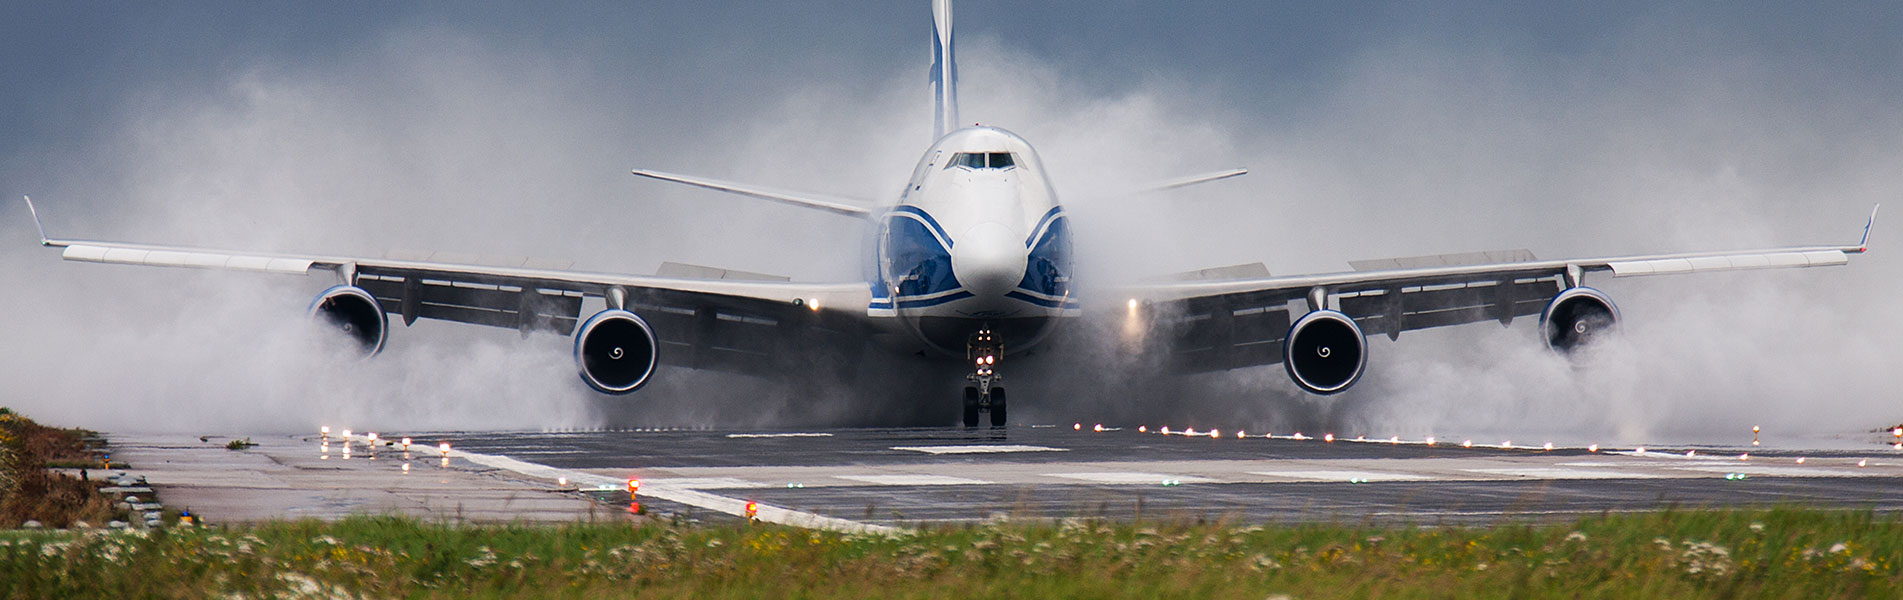 Jet Privato Globe Air : Air cargo charter solutions specialists in